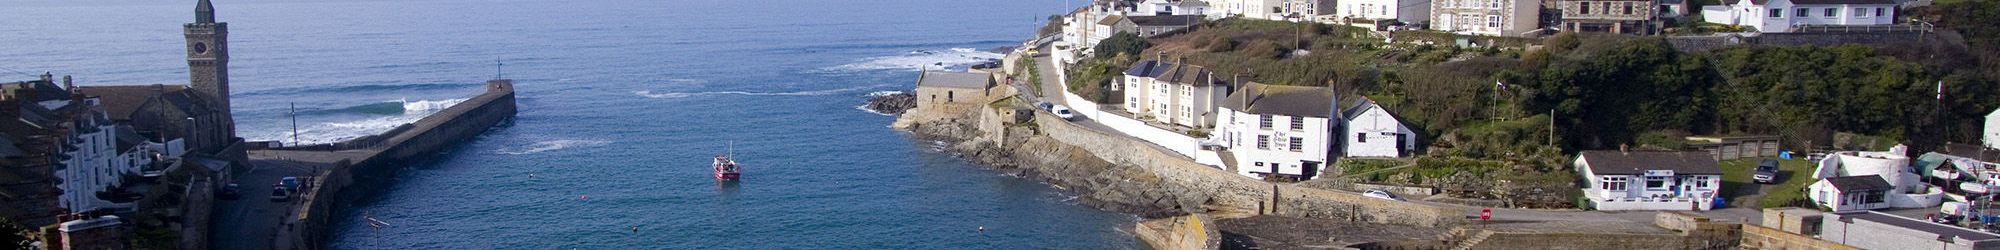 Porthleven Harbour view